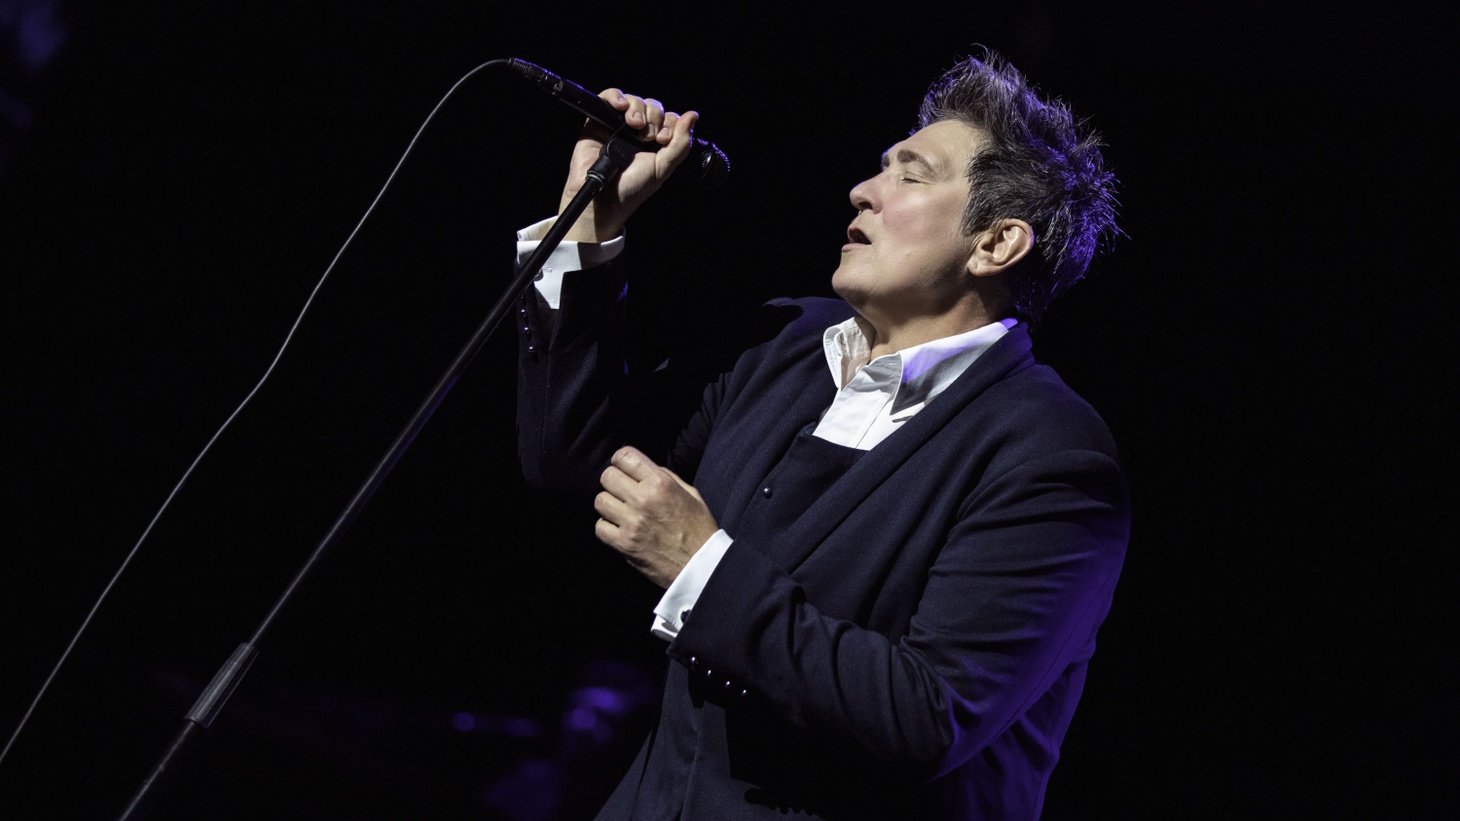 """1992 saw the release of celestial singer k.d. lang's album """"Ingénue,"""" with its track """"Miss Chatelaine"""" earning a Grammy nomination for Best Female Pop Vocal Performance the following year."""